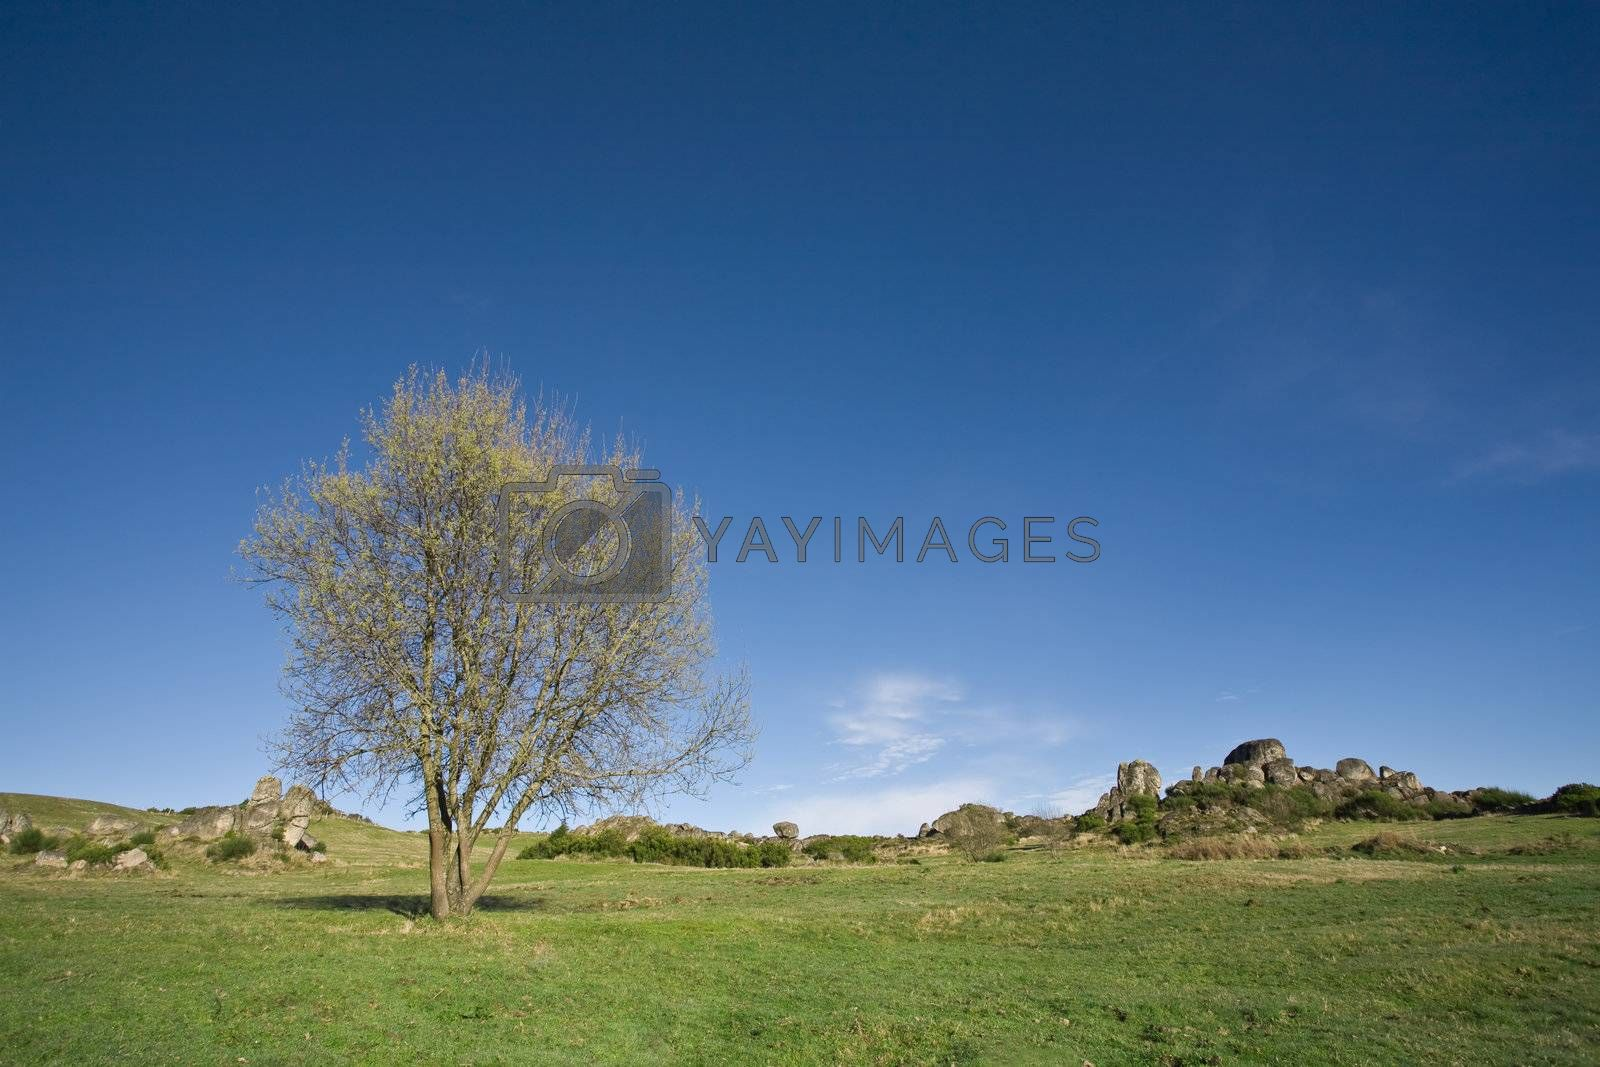 Photo of a lonely tree on a pasture field.